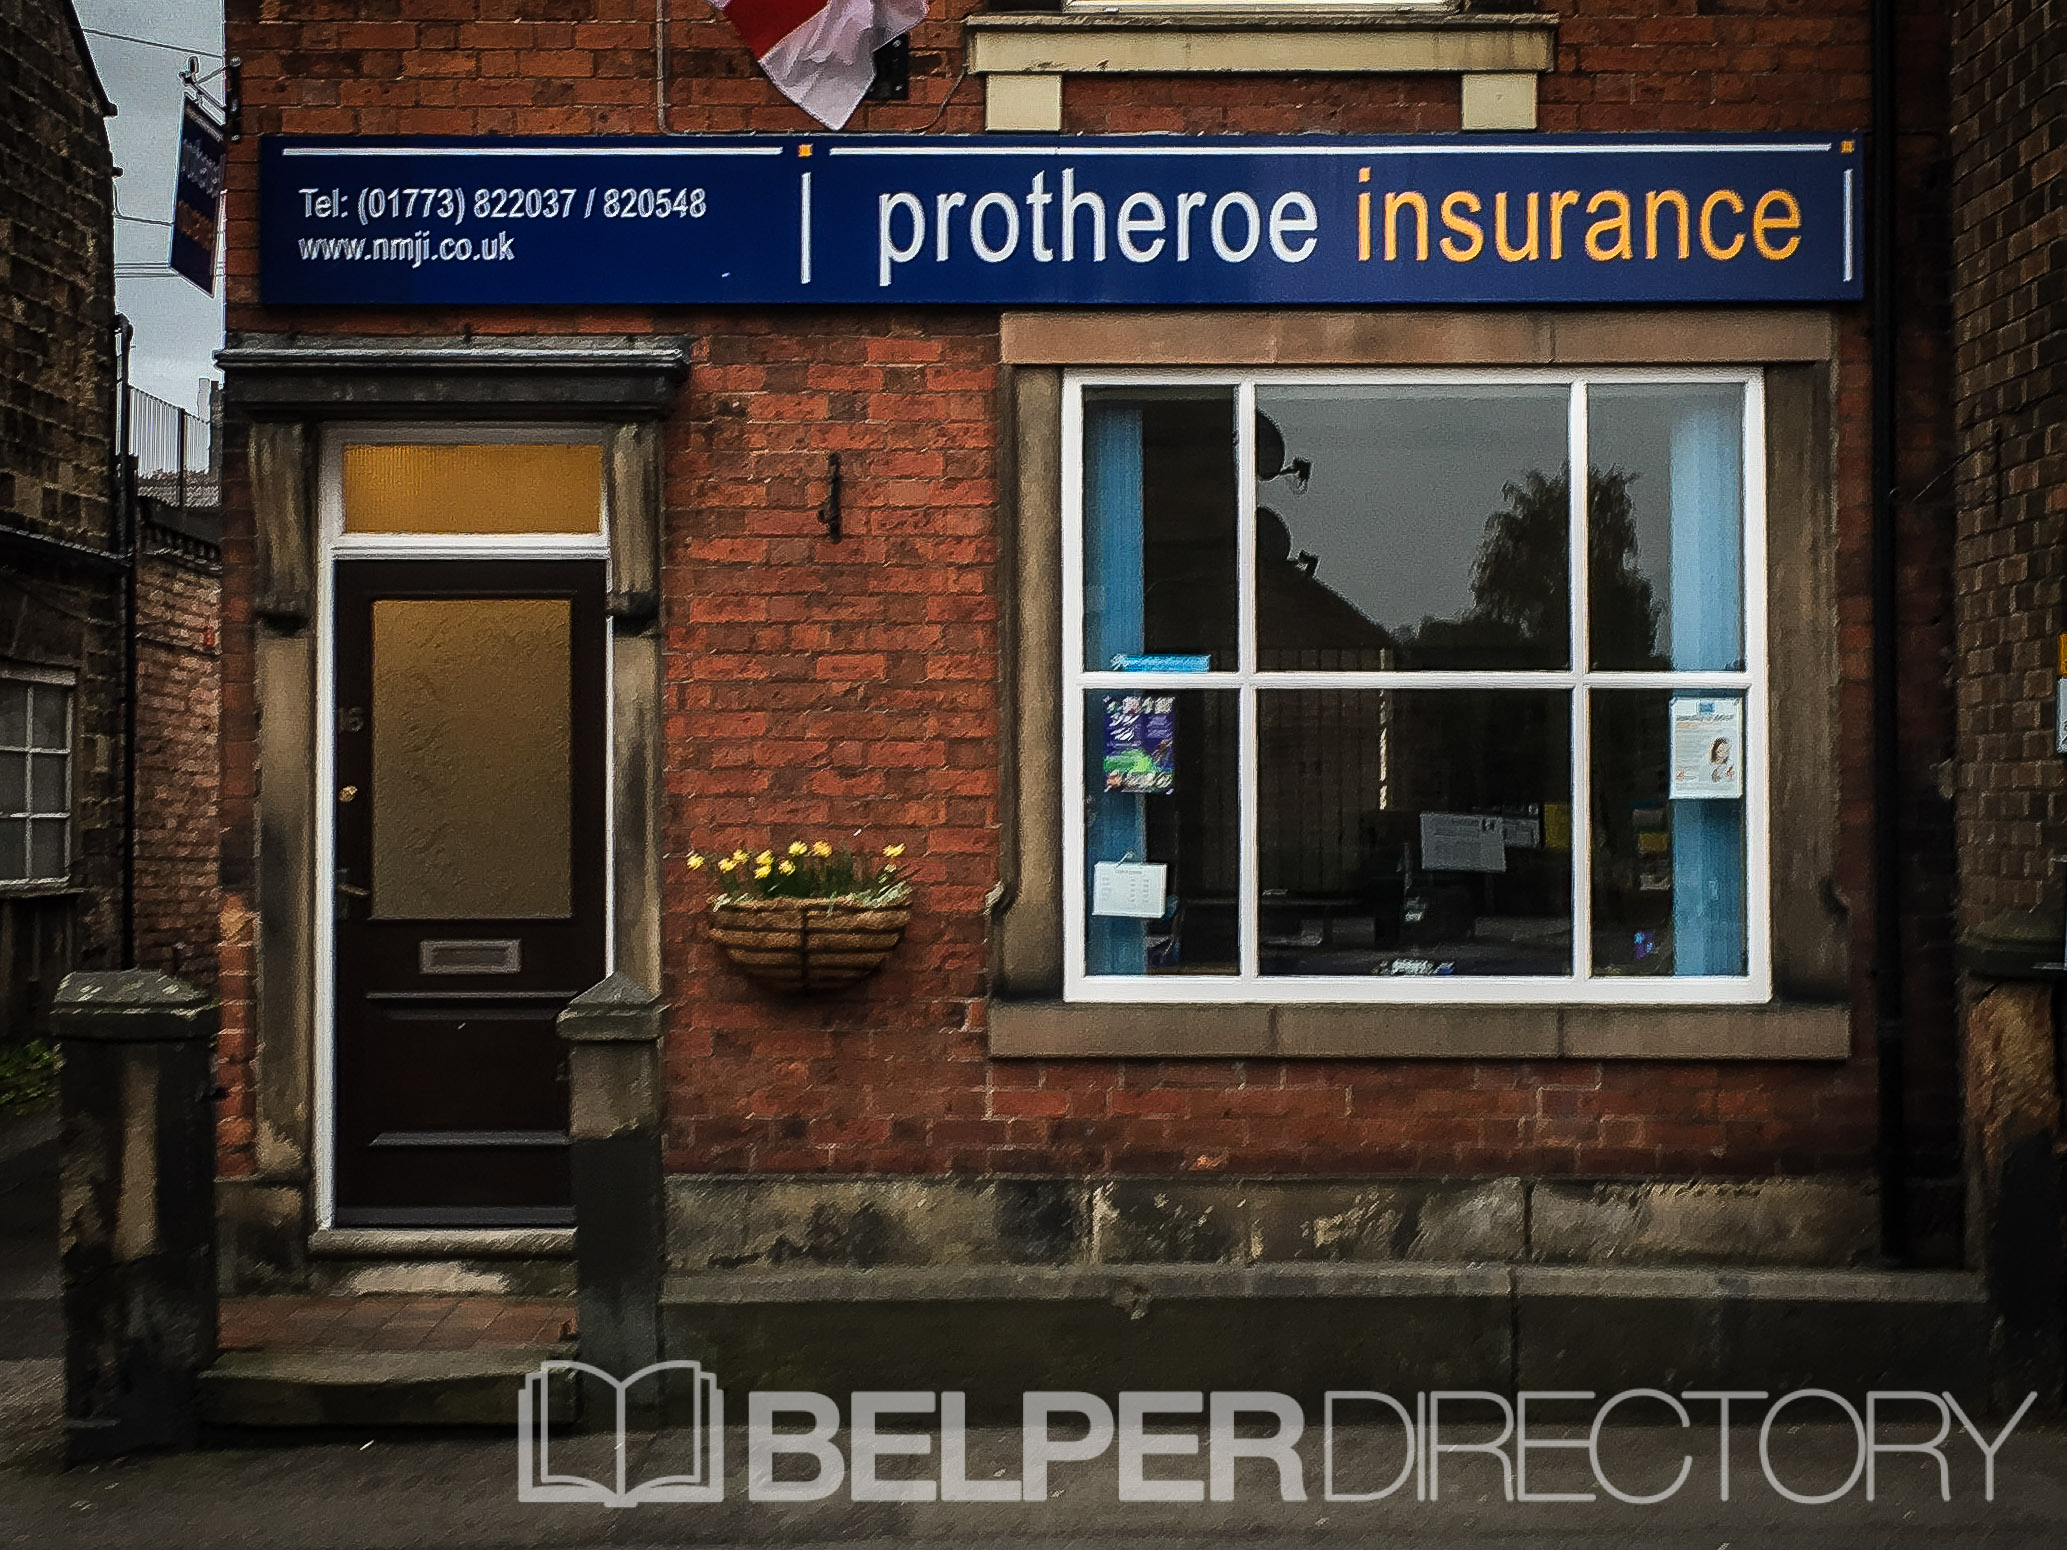 Protheroe Insurance on Inter Search